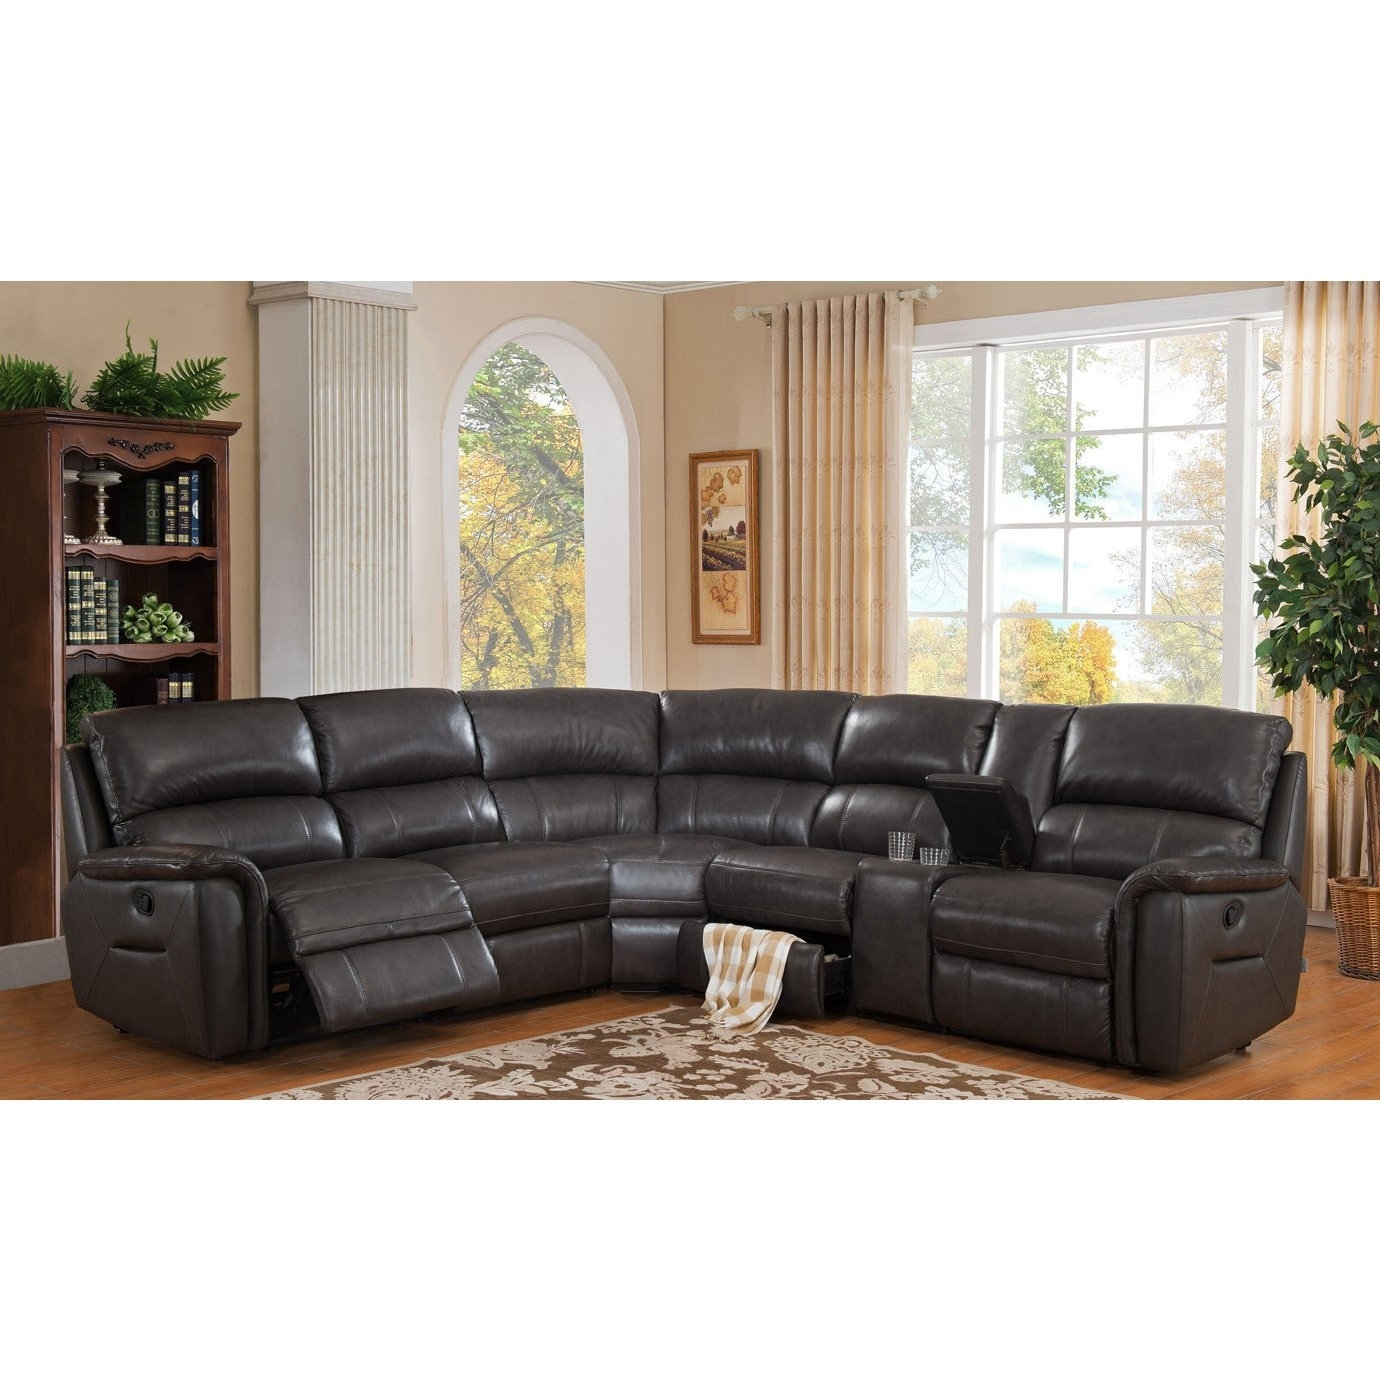 Shop Hydelineamax Camino Charcoal Grey Leather Reclining Throughout Kristen Silver Grey 6 Piece Power Reclining Sectionals (View 11 of 25)